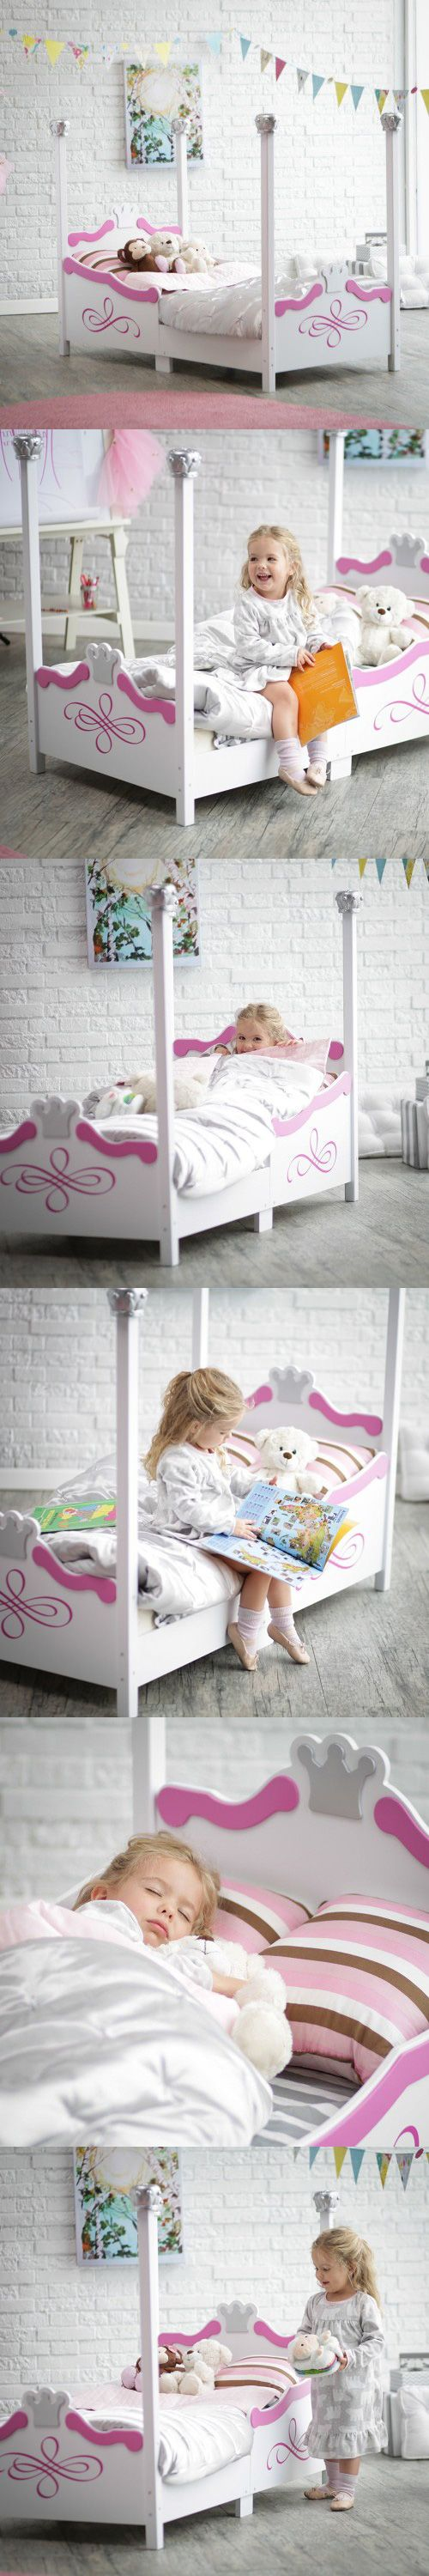 This Kidkraft Princess Toddler Bed painted in silver tone finish with crowns adorning the headboard, footboard, the top of each bed post, the KidKraft Princess Toddler Bed - Silver, it is sure to be your child's dream come true.  It's constructed from strong, durable wood and easy for your princess to crawl into. This toddler bed makes the transition from a crib much easier. The recommended age for this bed is 15 months and up, and the maximum weight capacity is 50 pounds.